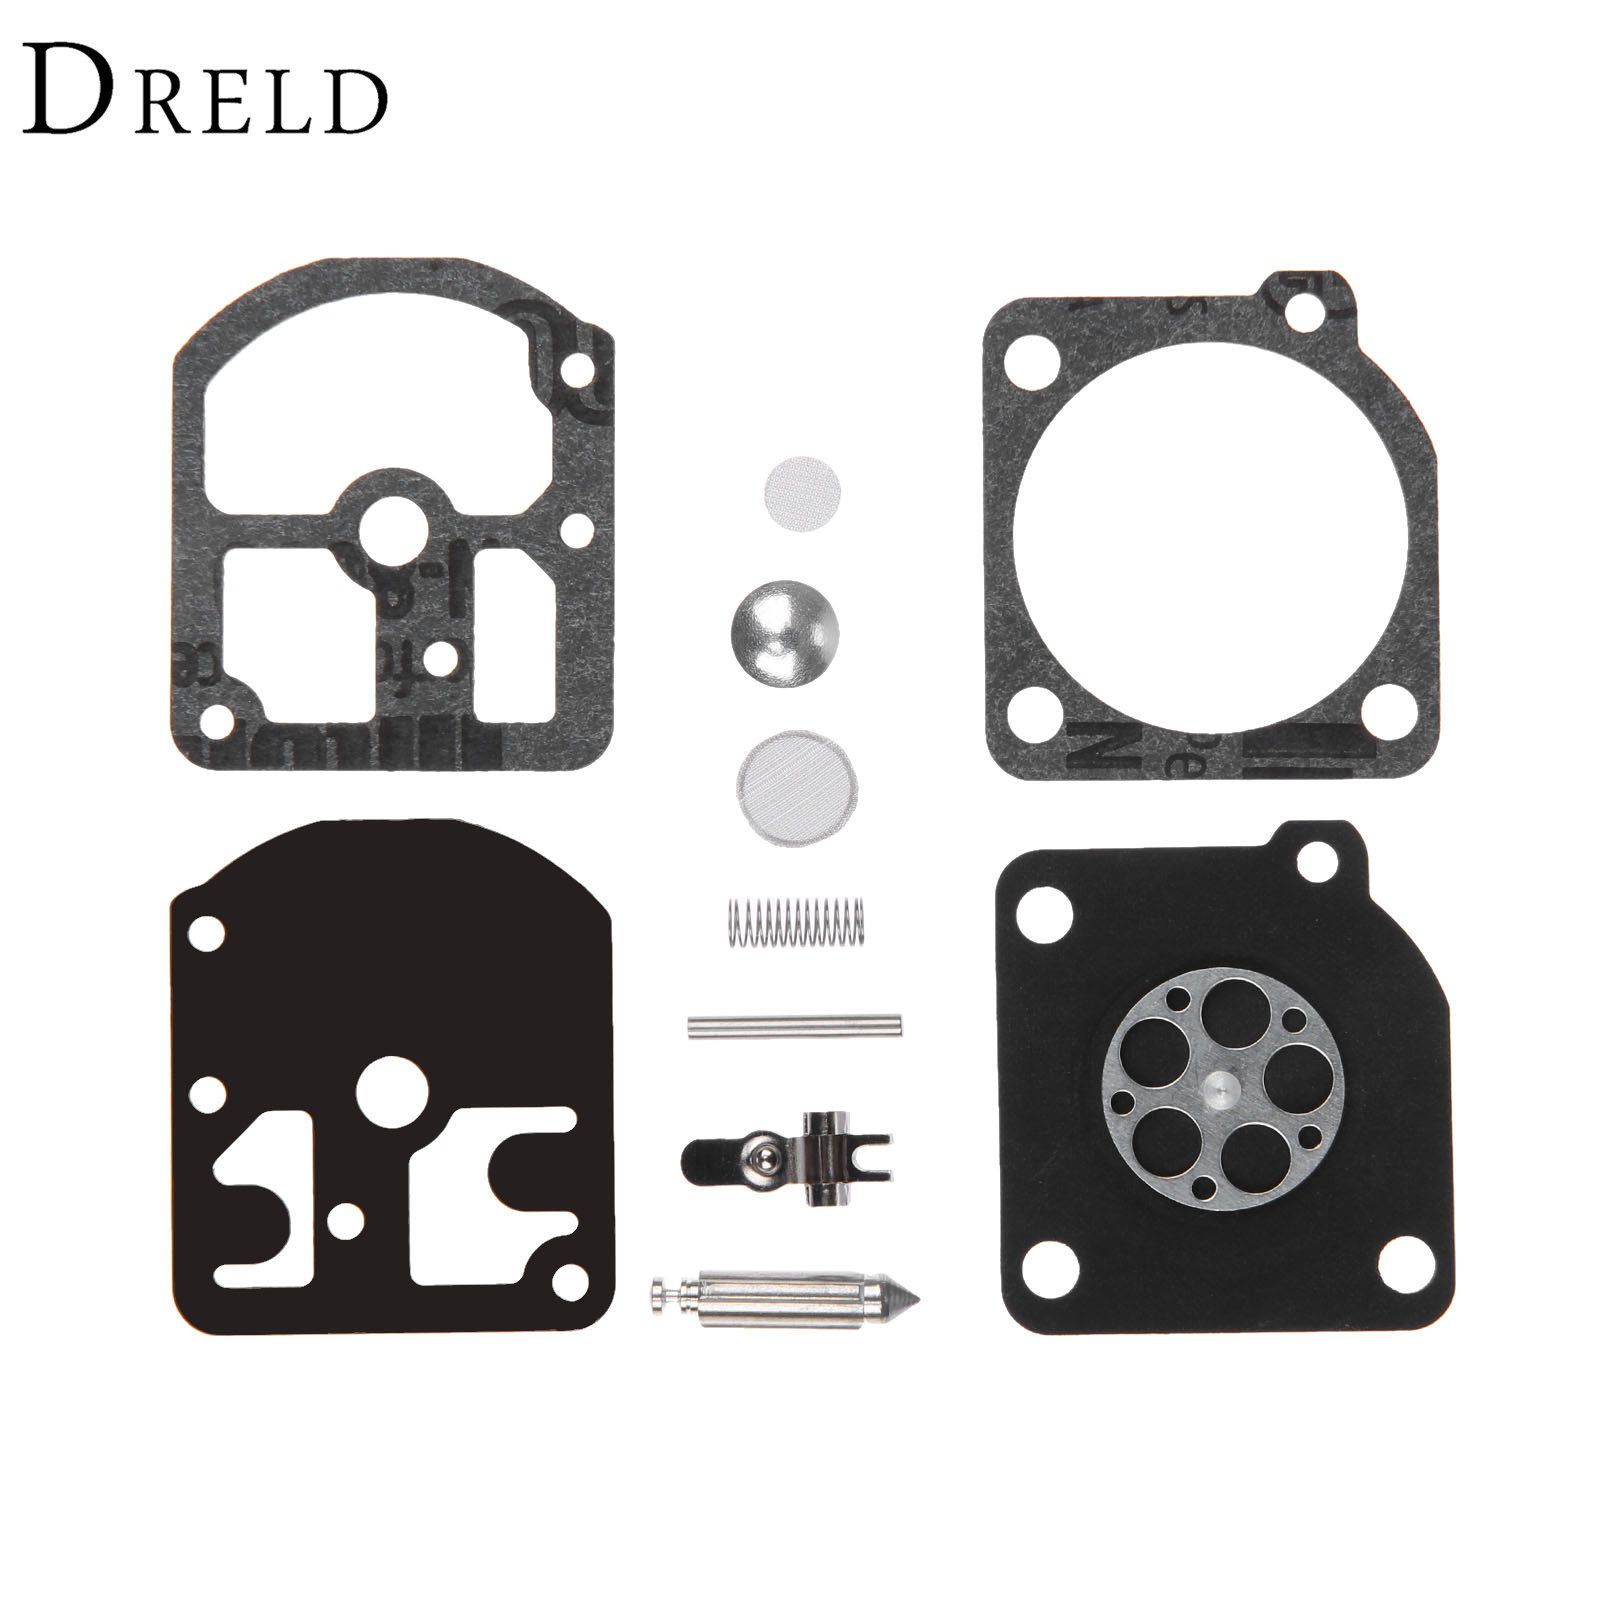 DRELD RB-11 Carburetor Carb Rebuild Tool Repair Gasket Kit For Stihl 009 010 011 012 011AV C1S-S1A C1S-S1B Chainsaw Parts AE0815